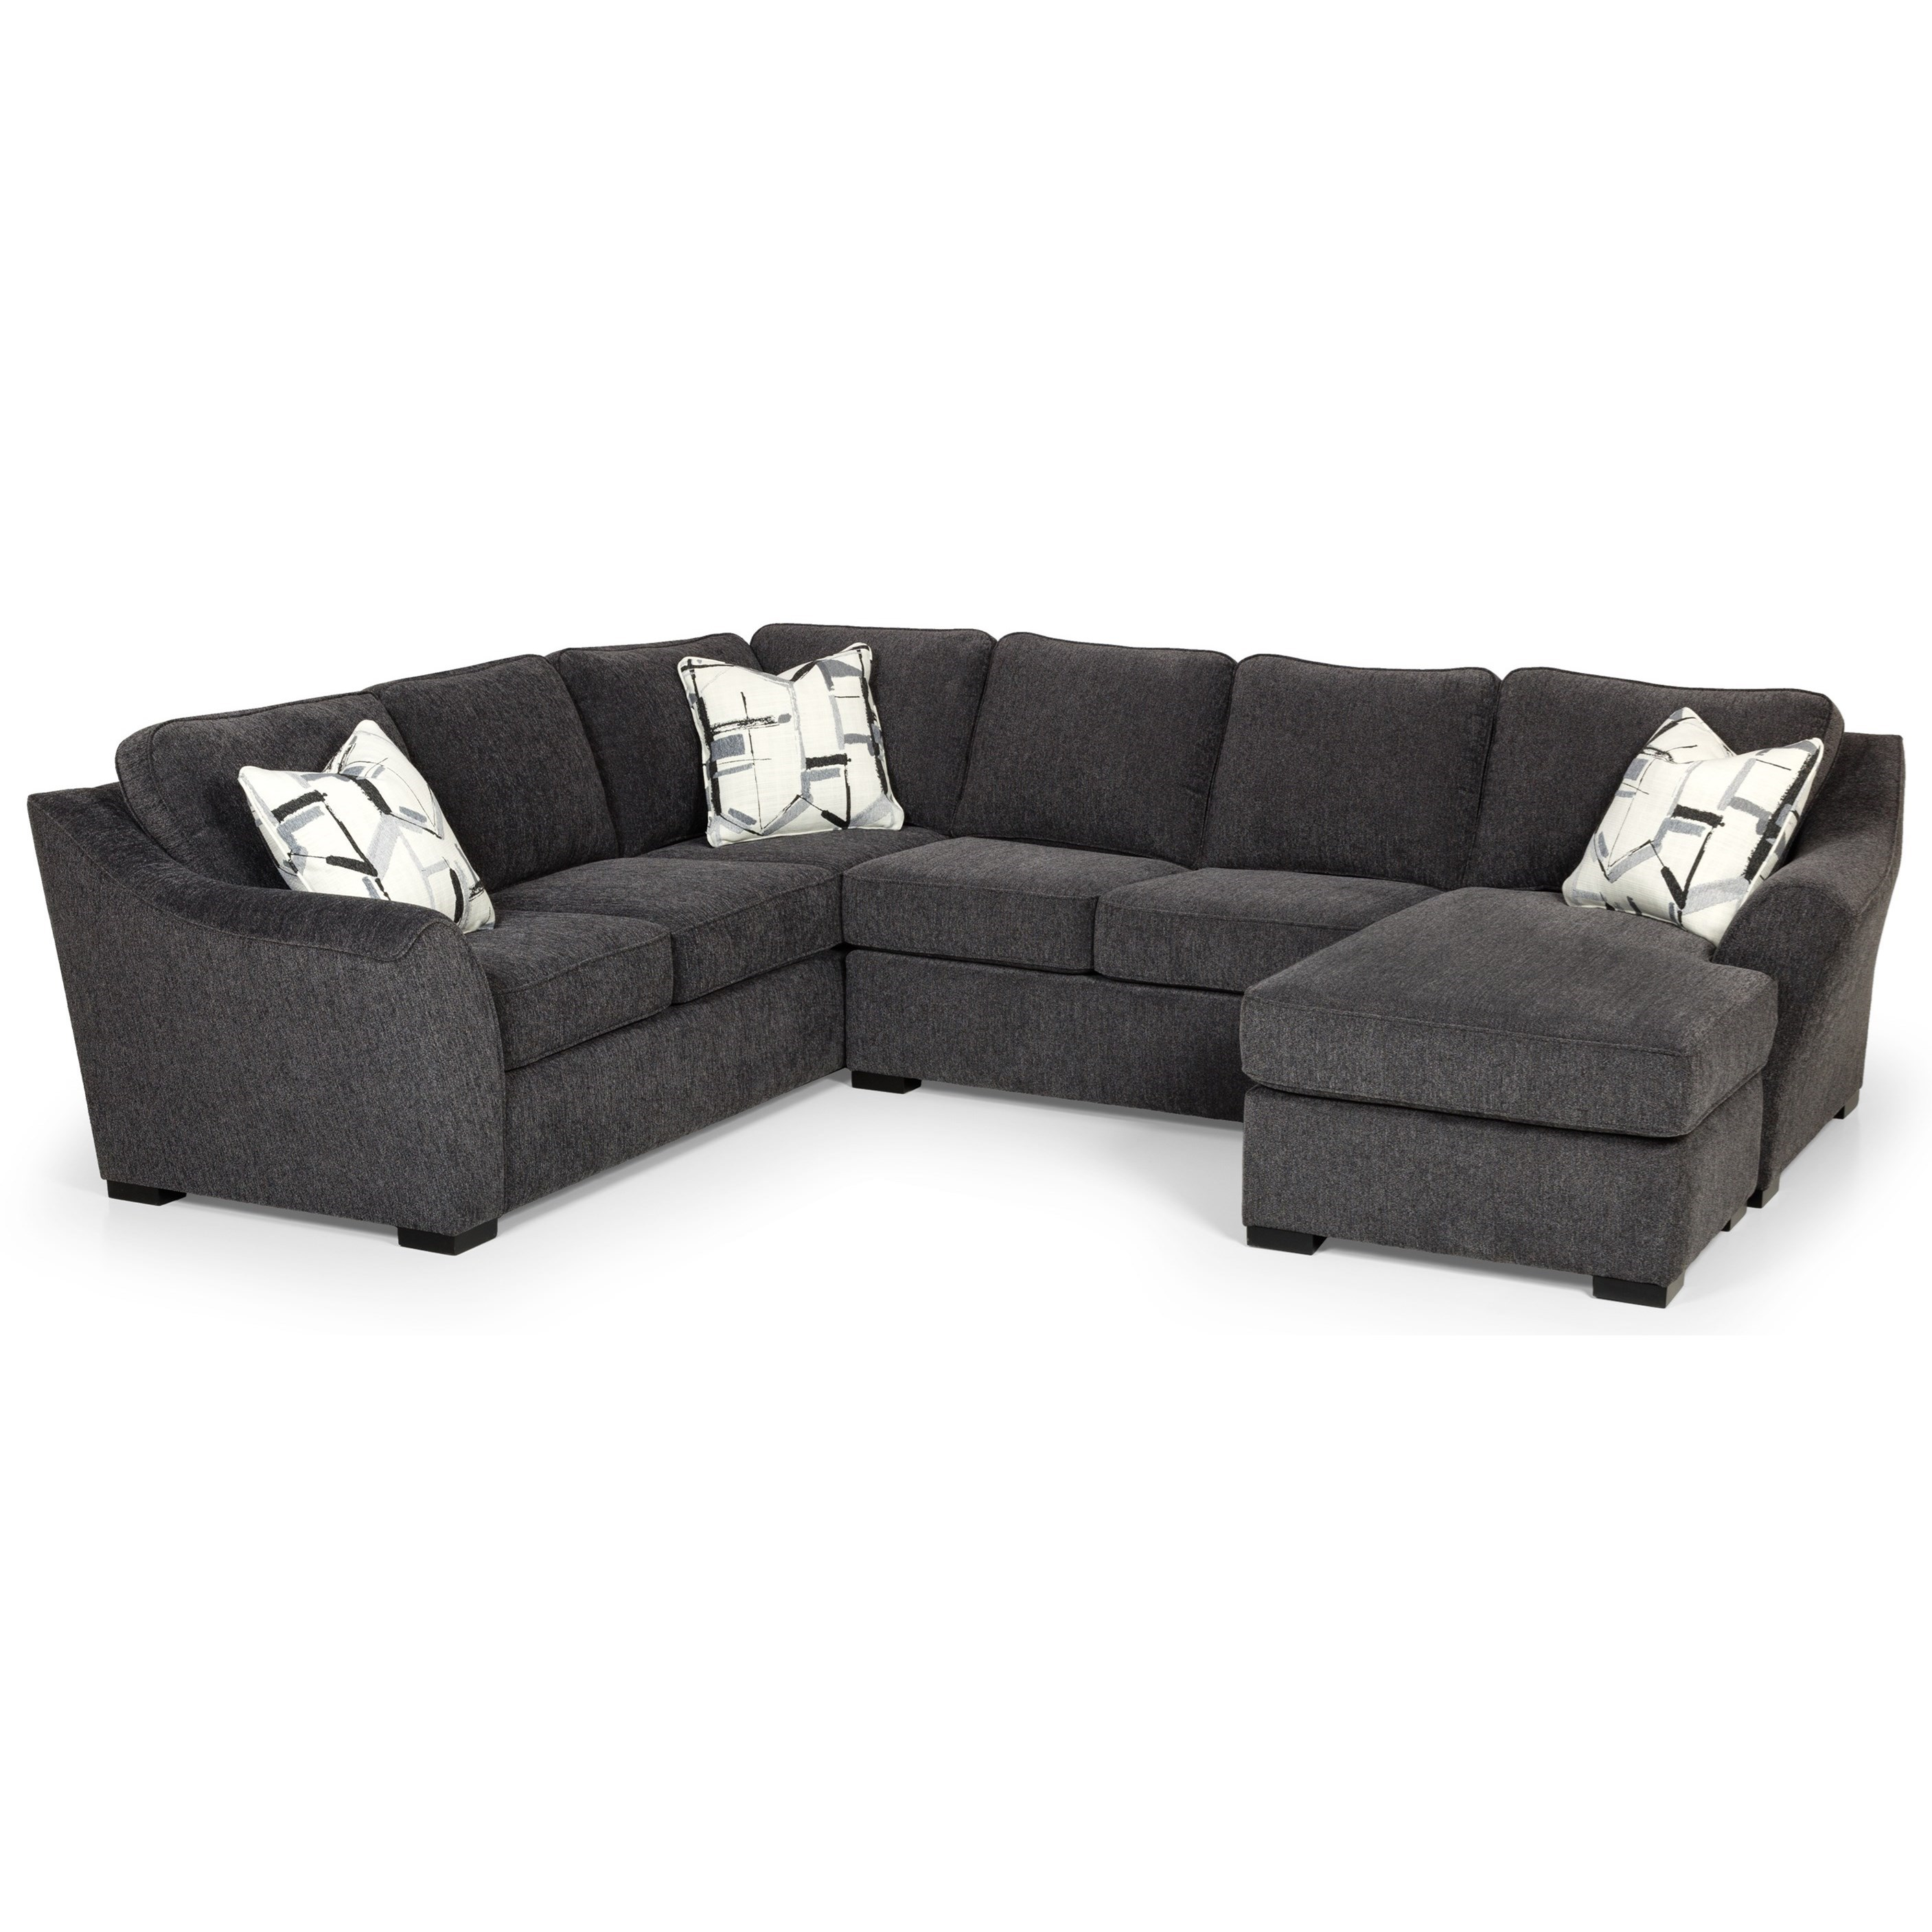 484 Sectional Sofa by Stanton at Rife's Home Furniture